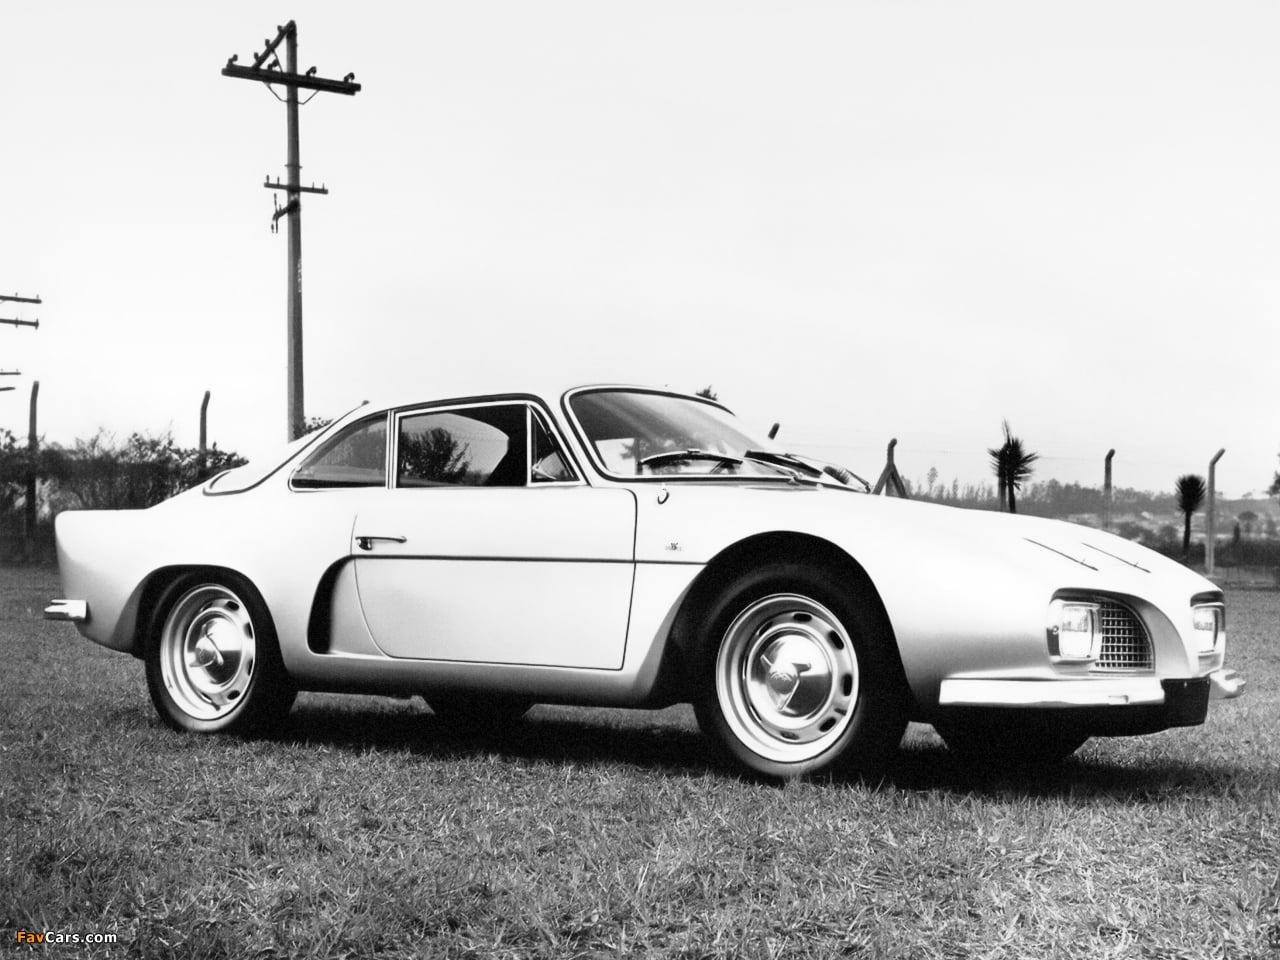 Willys Interlagos II Prototype 1966 5